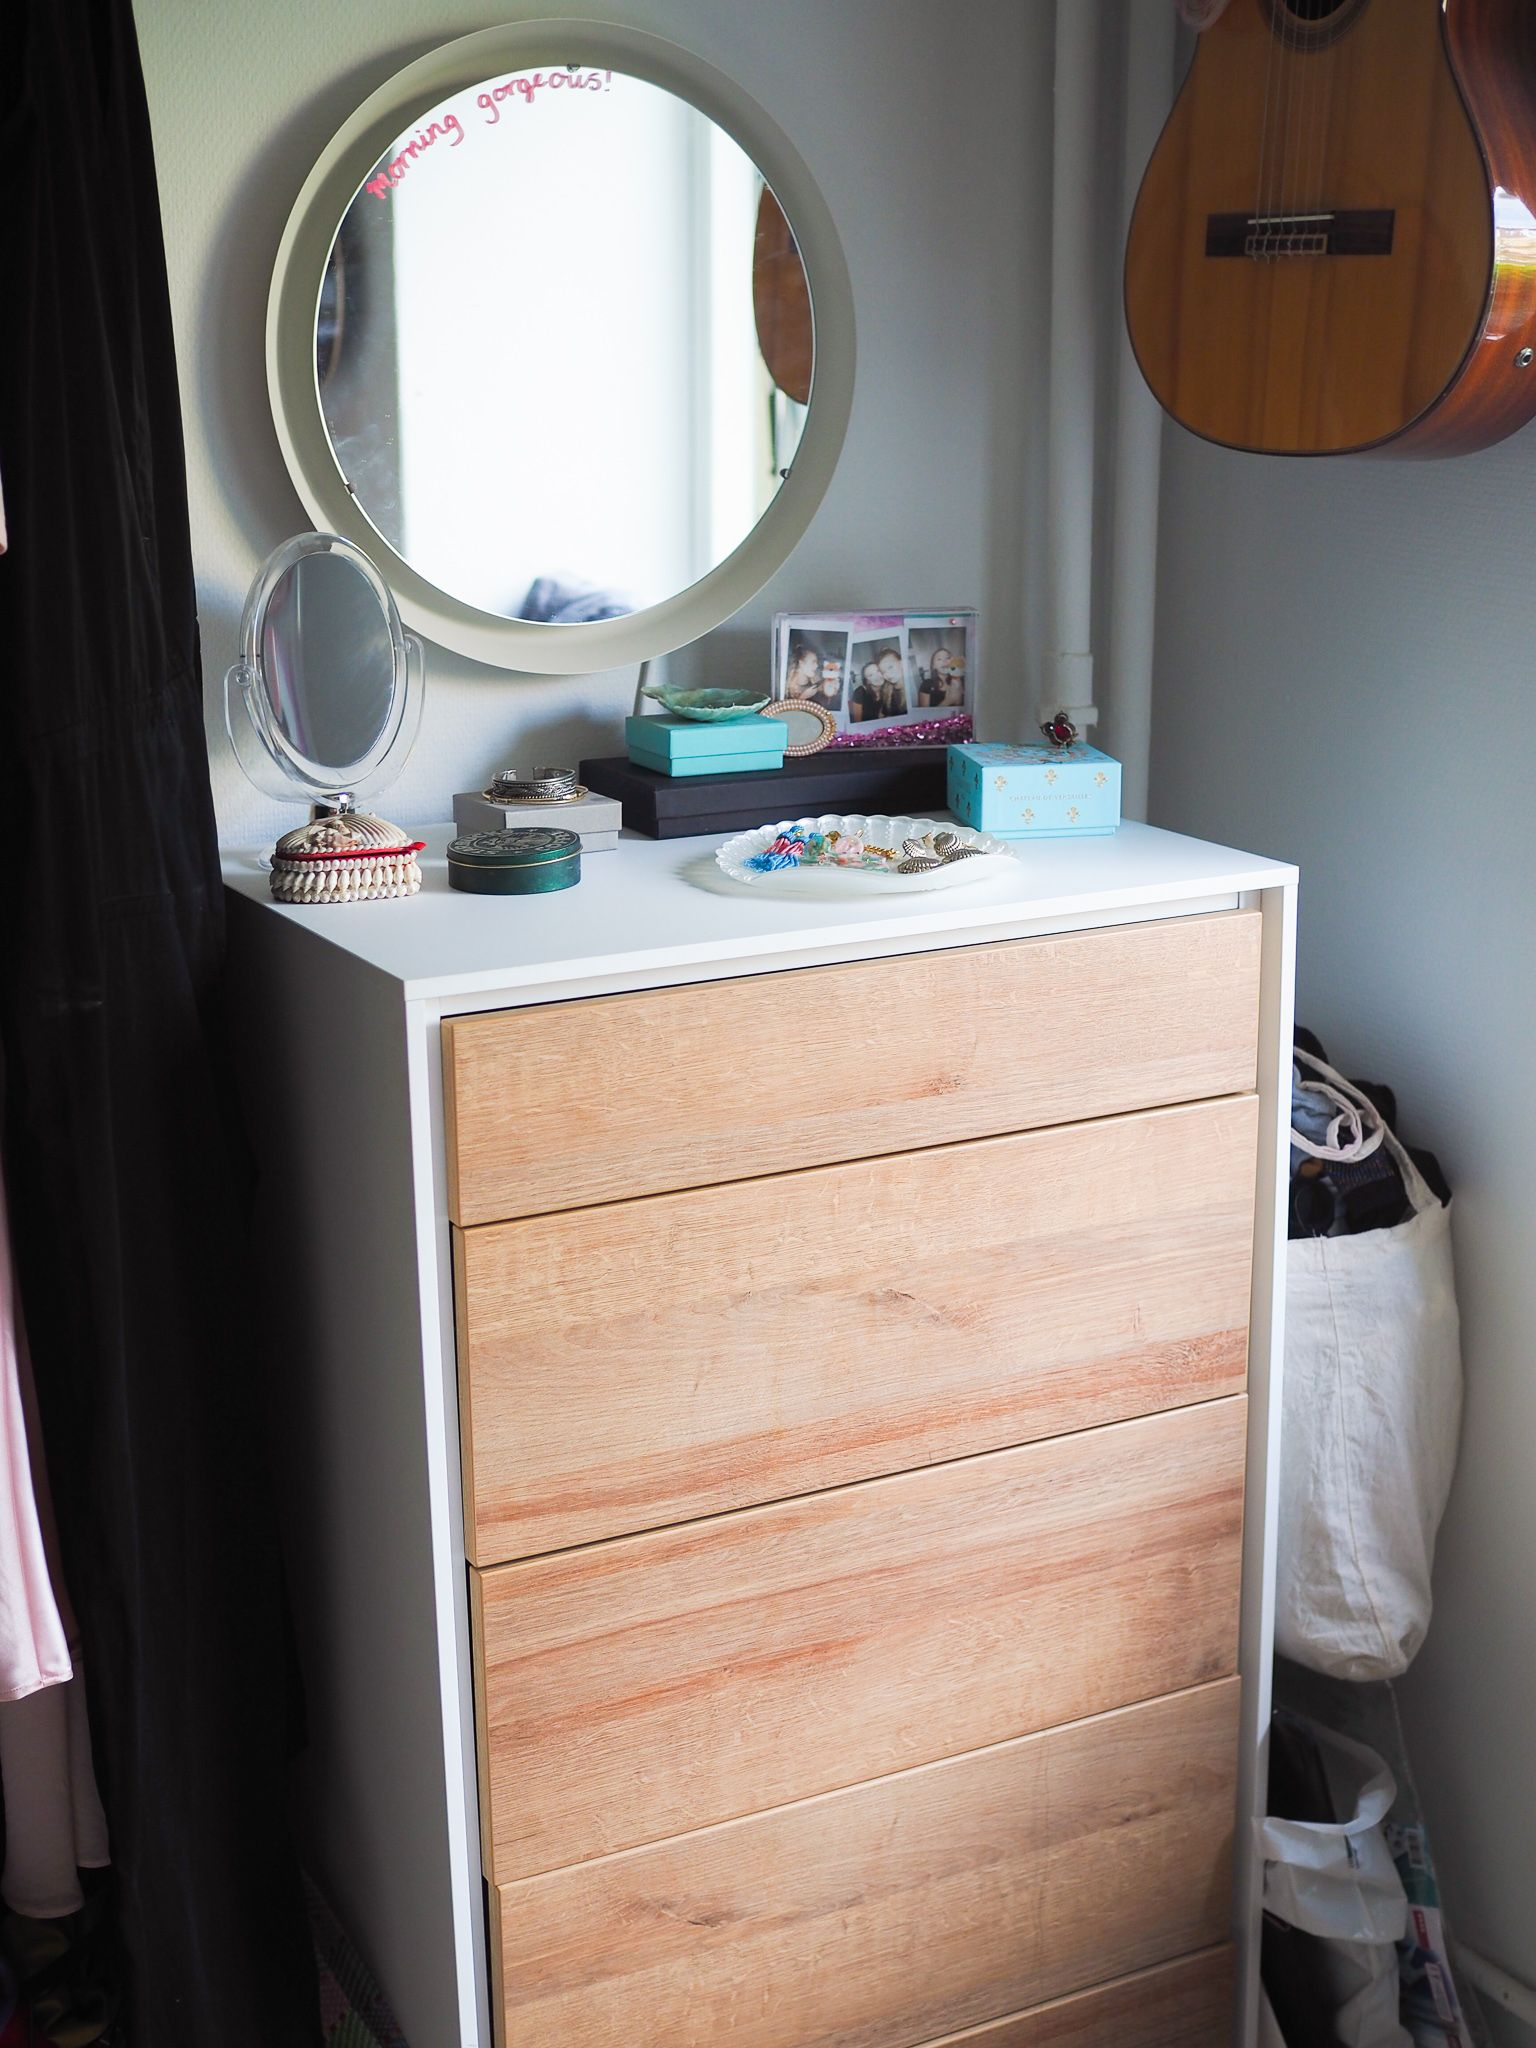 I am changing up our home as we are getting ready for the arrival of a little family addition! As stoked as i am for the new i LOVE looking back at pictures of what my home used to look like! Just like me my home is growing and evolving!  #nordicinspiration #mynordicroom #mynordichome #interiorstyled #topstylefiles #houseenvy #smallspacesquad #greathomestaketime #mycolourfulhome #colourmyhome #interiormilk #myhouseandhome #howihome #mystylednest #stylishhomevibes #homestory #shareyourparadise